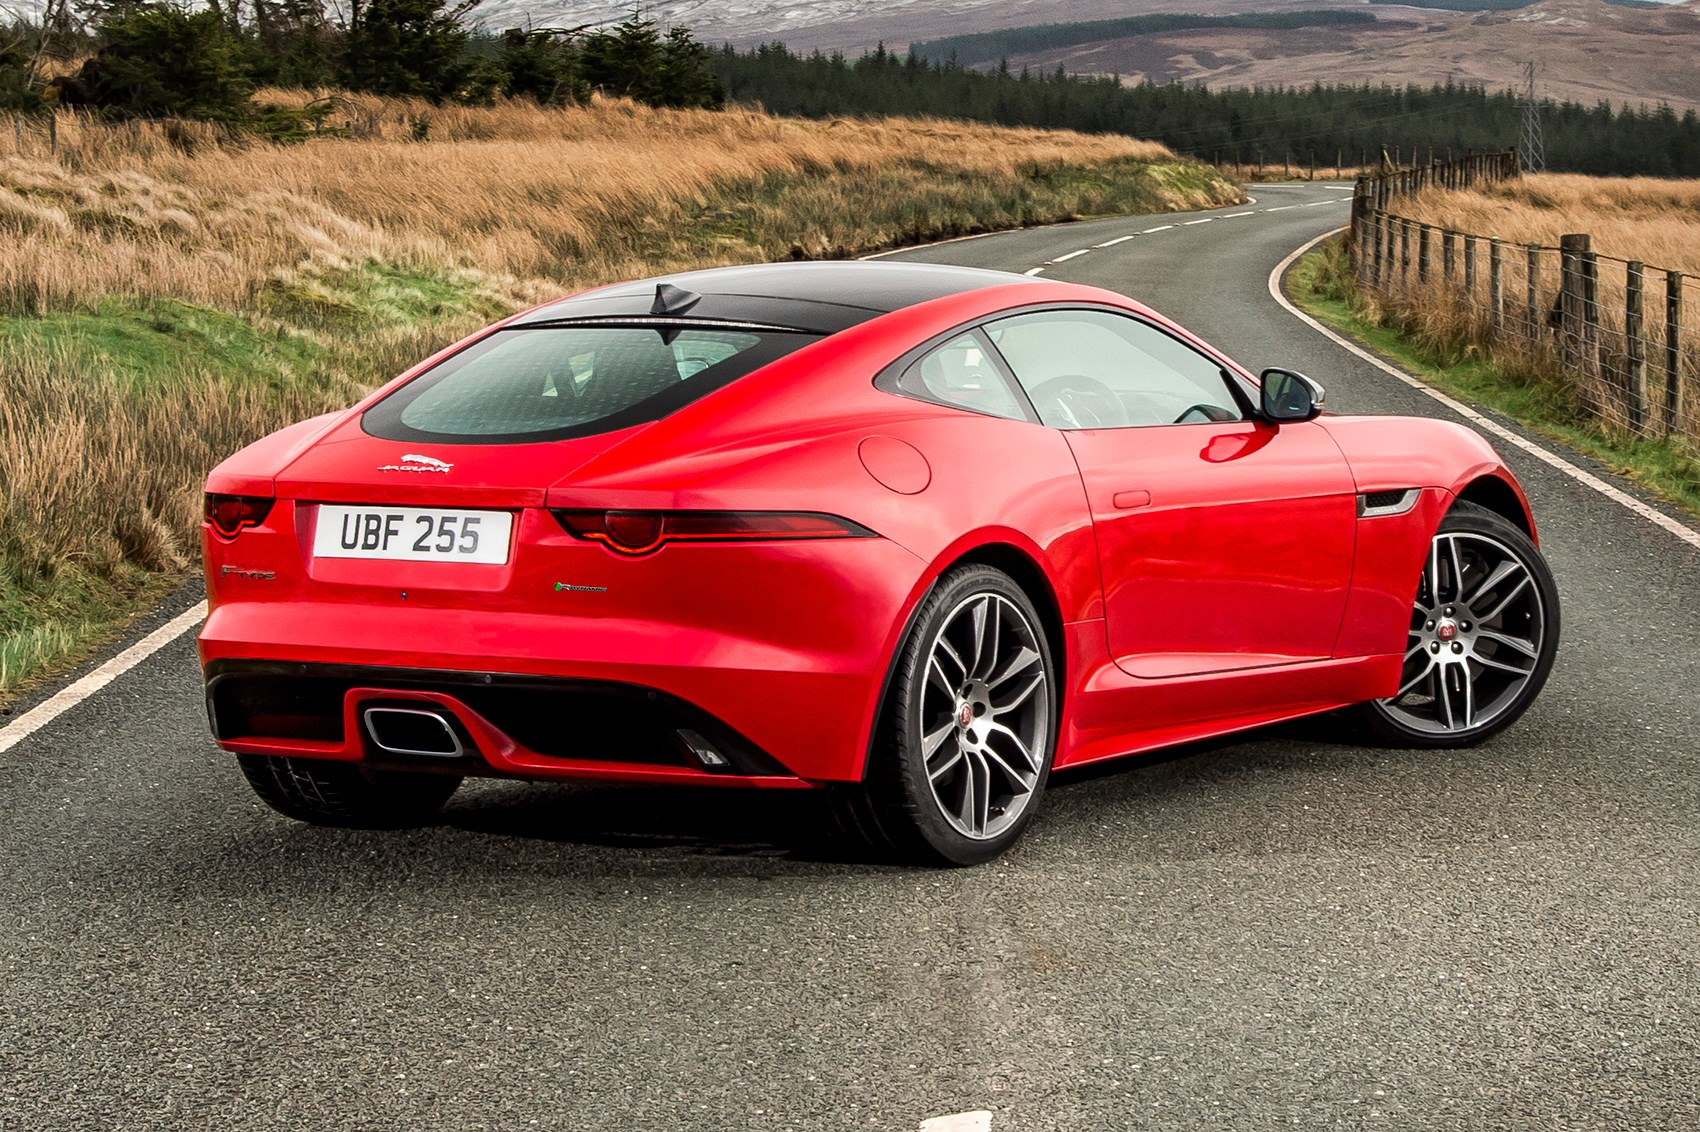 Jaguar Cars News Jaguar F Type 4cyl New Base Sportster Is On Sale Now By